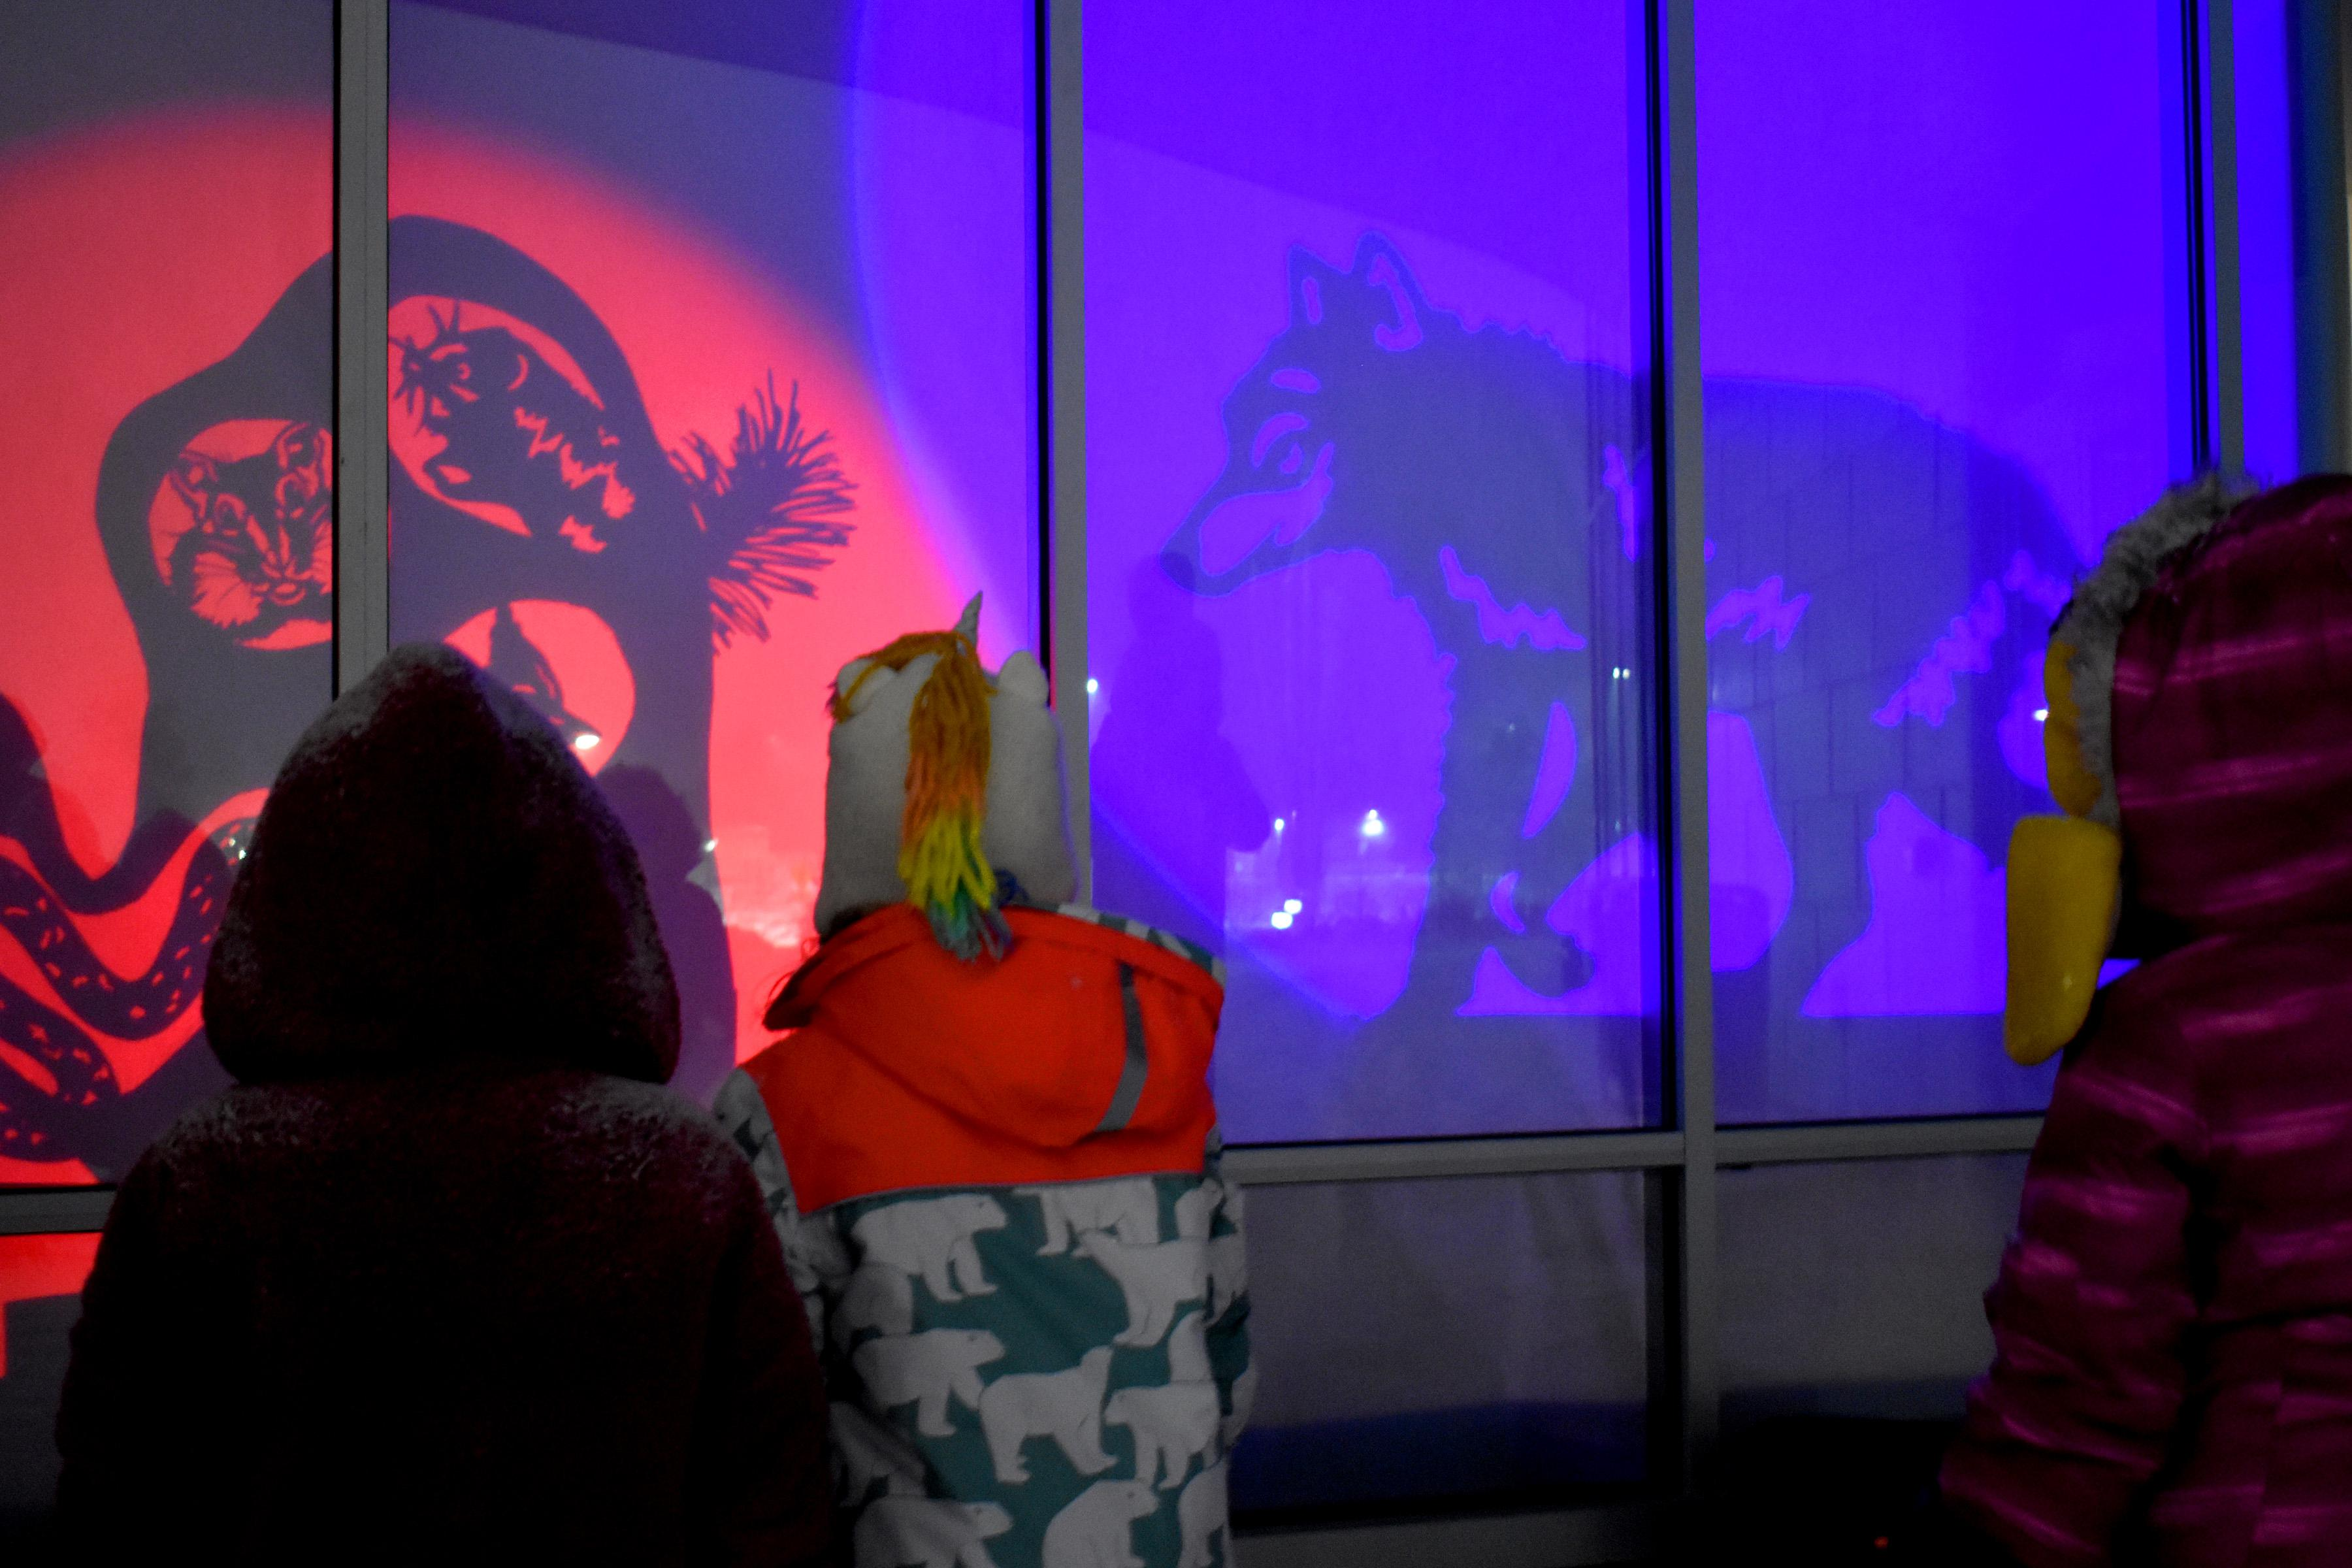 Shadow puppets displayed on a window with children looking at them